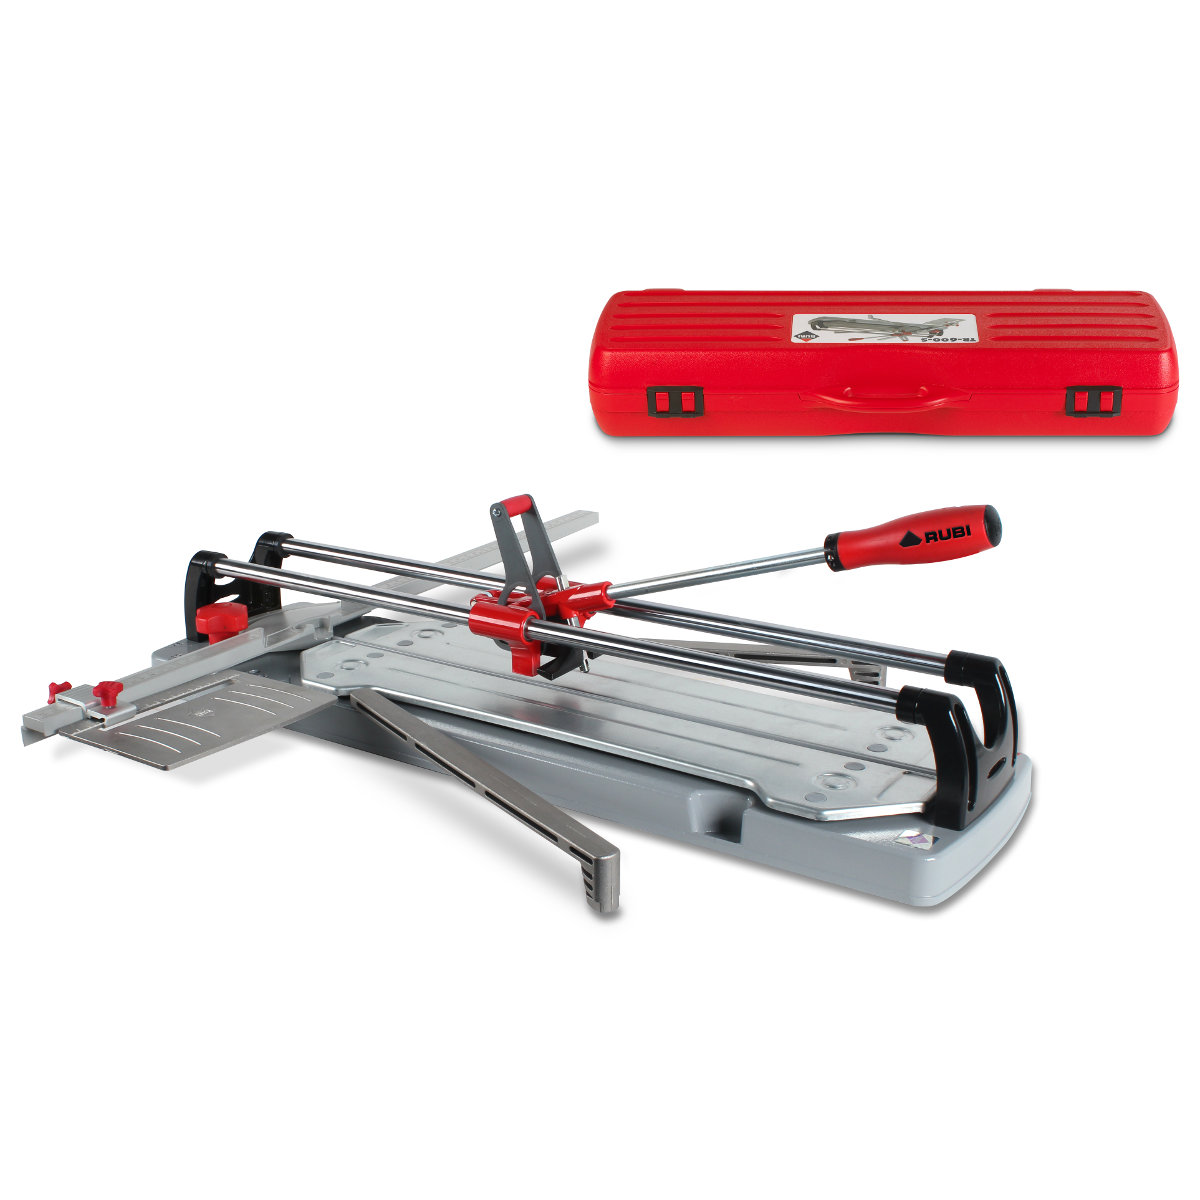 Floor tile cutter choice image tile flooring design ideas ceramic tile cutters for sale image collections tile flooring floor tile remover hire images tile flooring dailygadgetfo Gallery